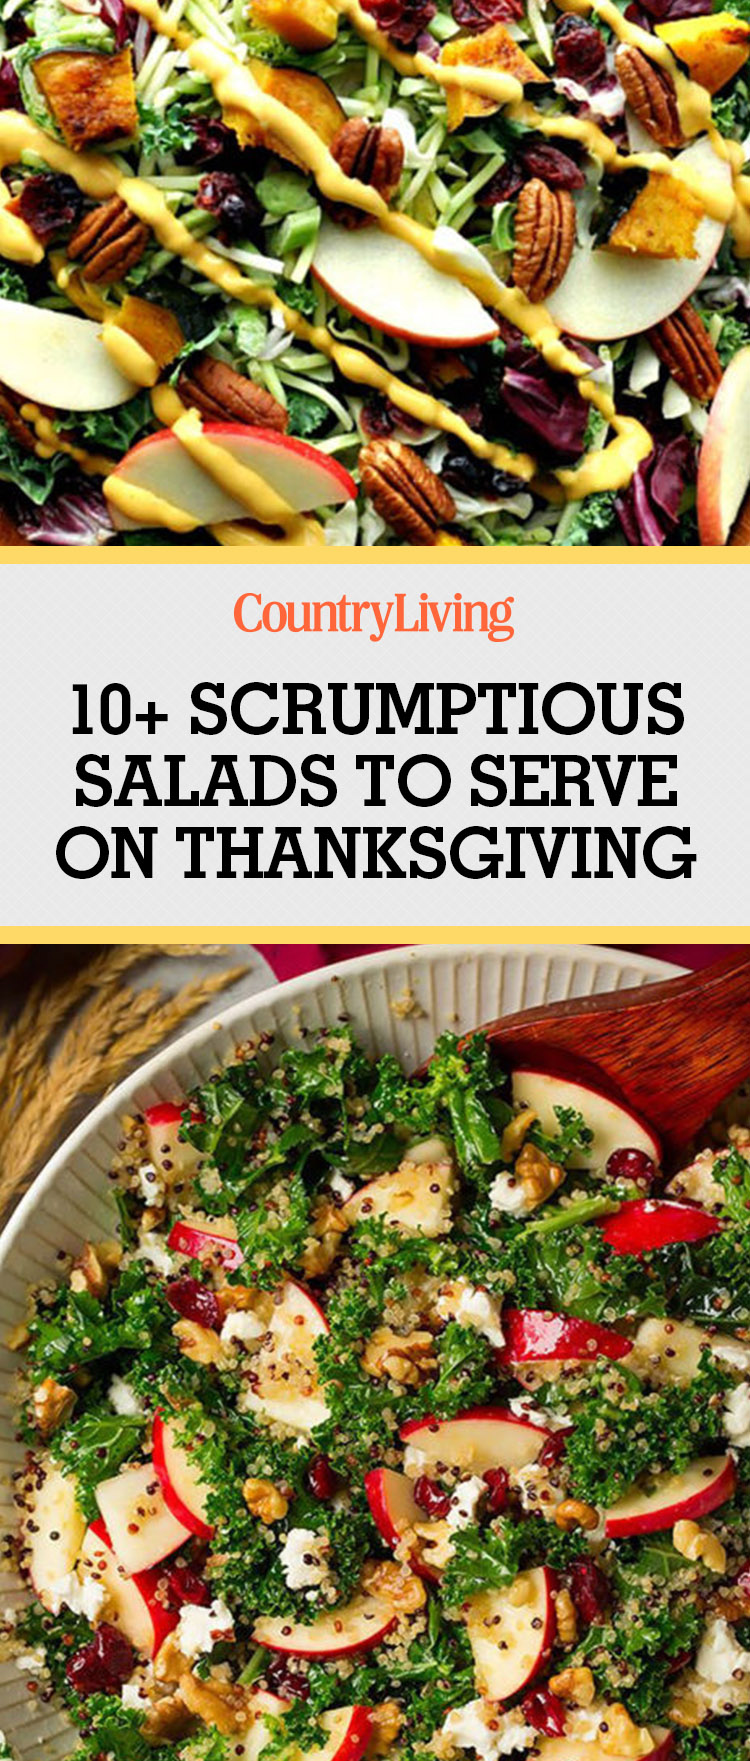 11 easy thanksgiving salad recipes best side salads for for Salad for thanksgiving best recipes